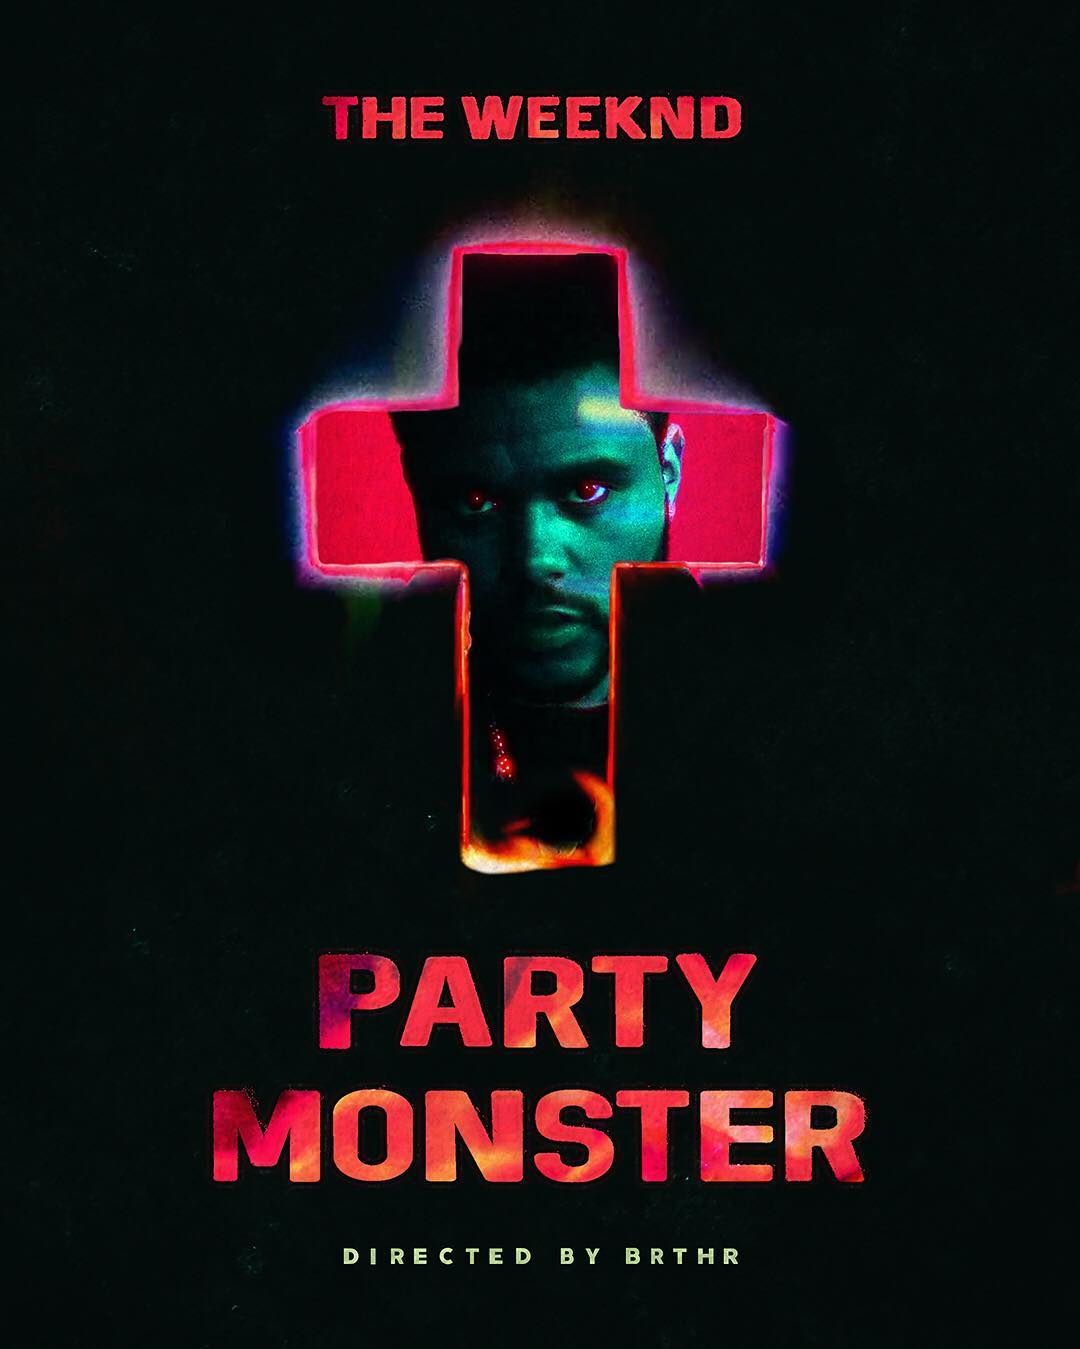 Most Inspiring Wallpaper Mac The Weeknd - -party-monster-poster-the-weeknd-40163760-1080-1349  Photograph_98288.jpg